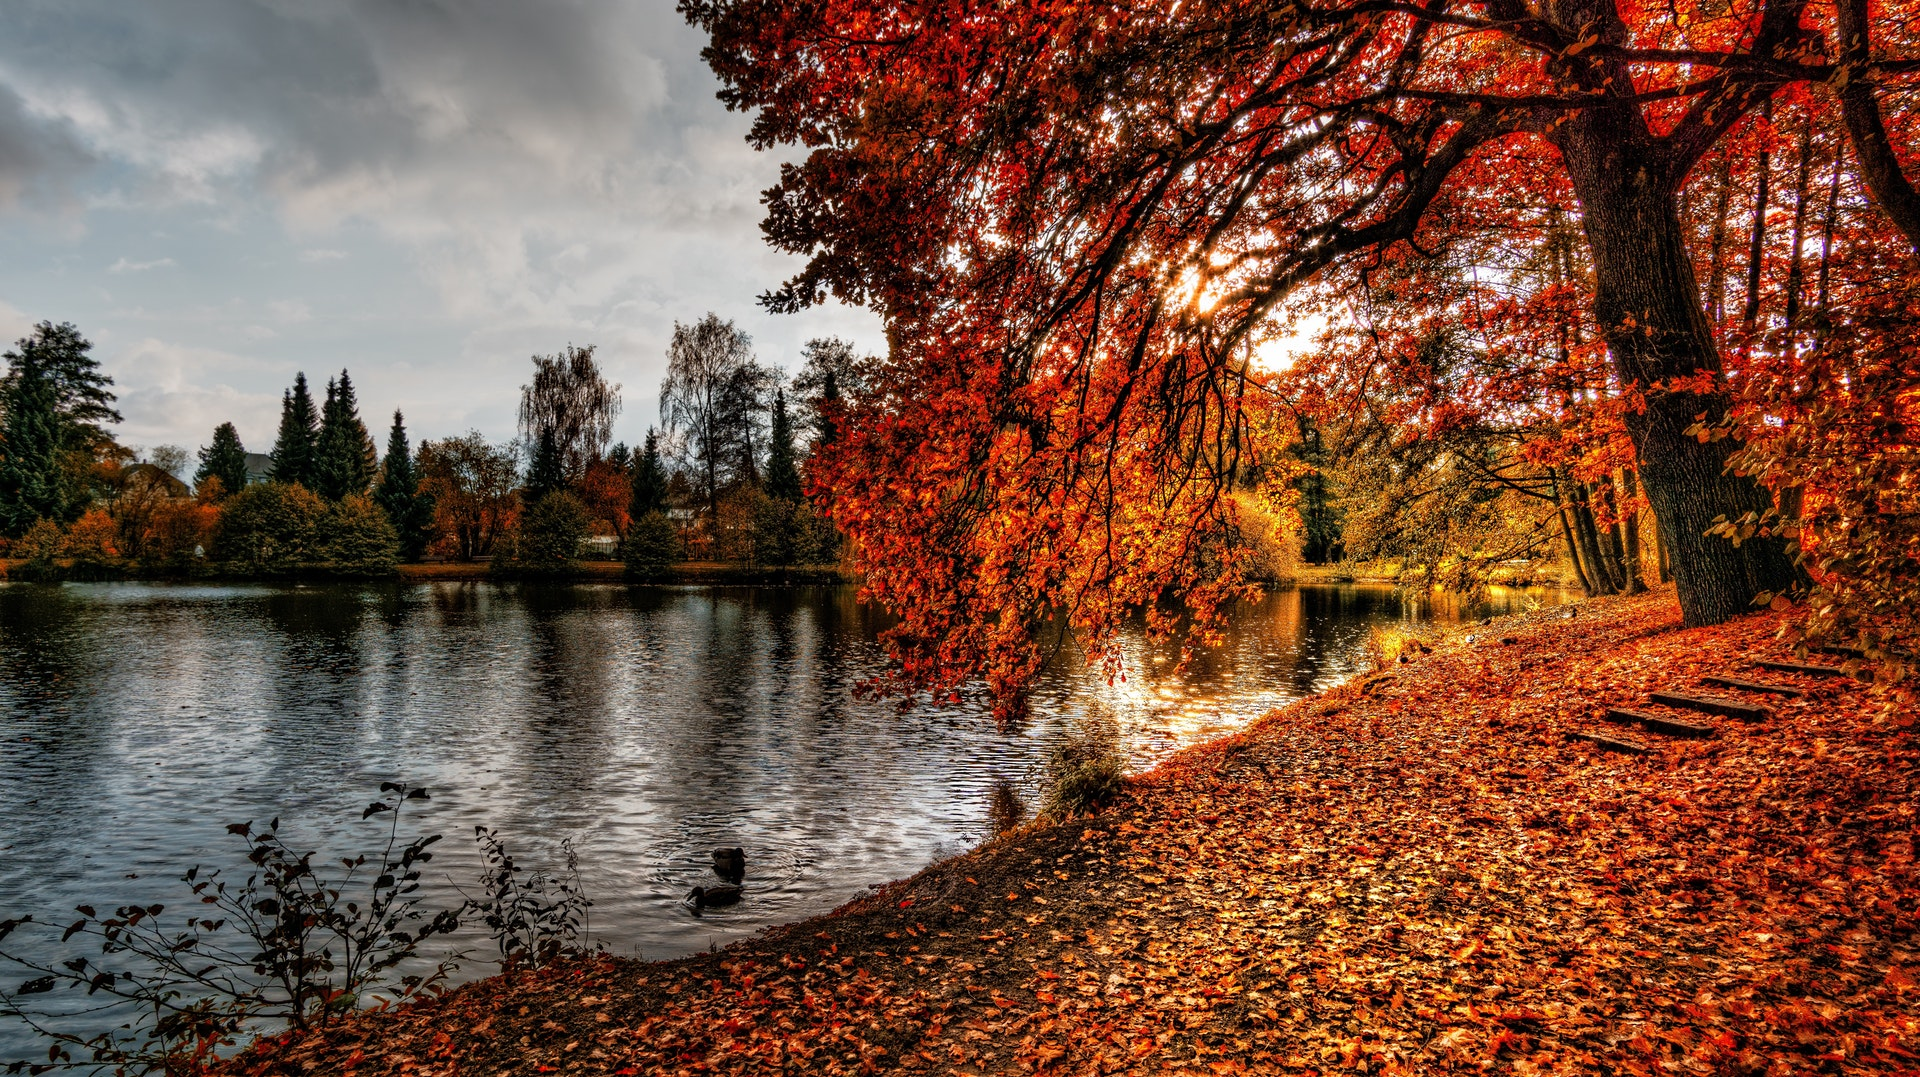 Autumn-1920x1080-wallpaper-wp3602832